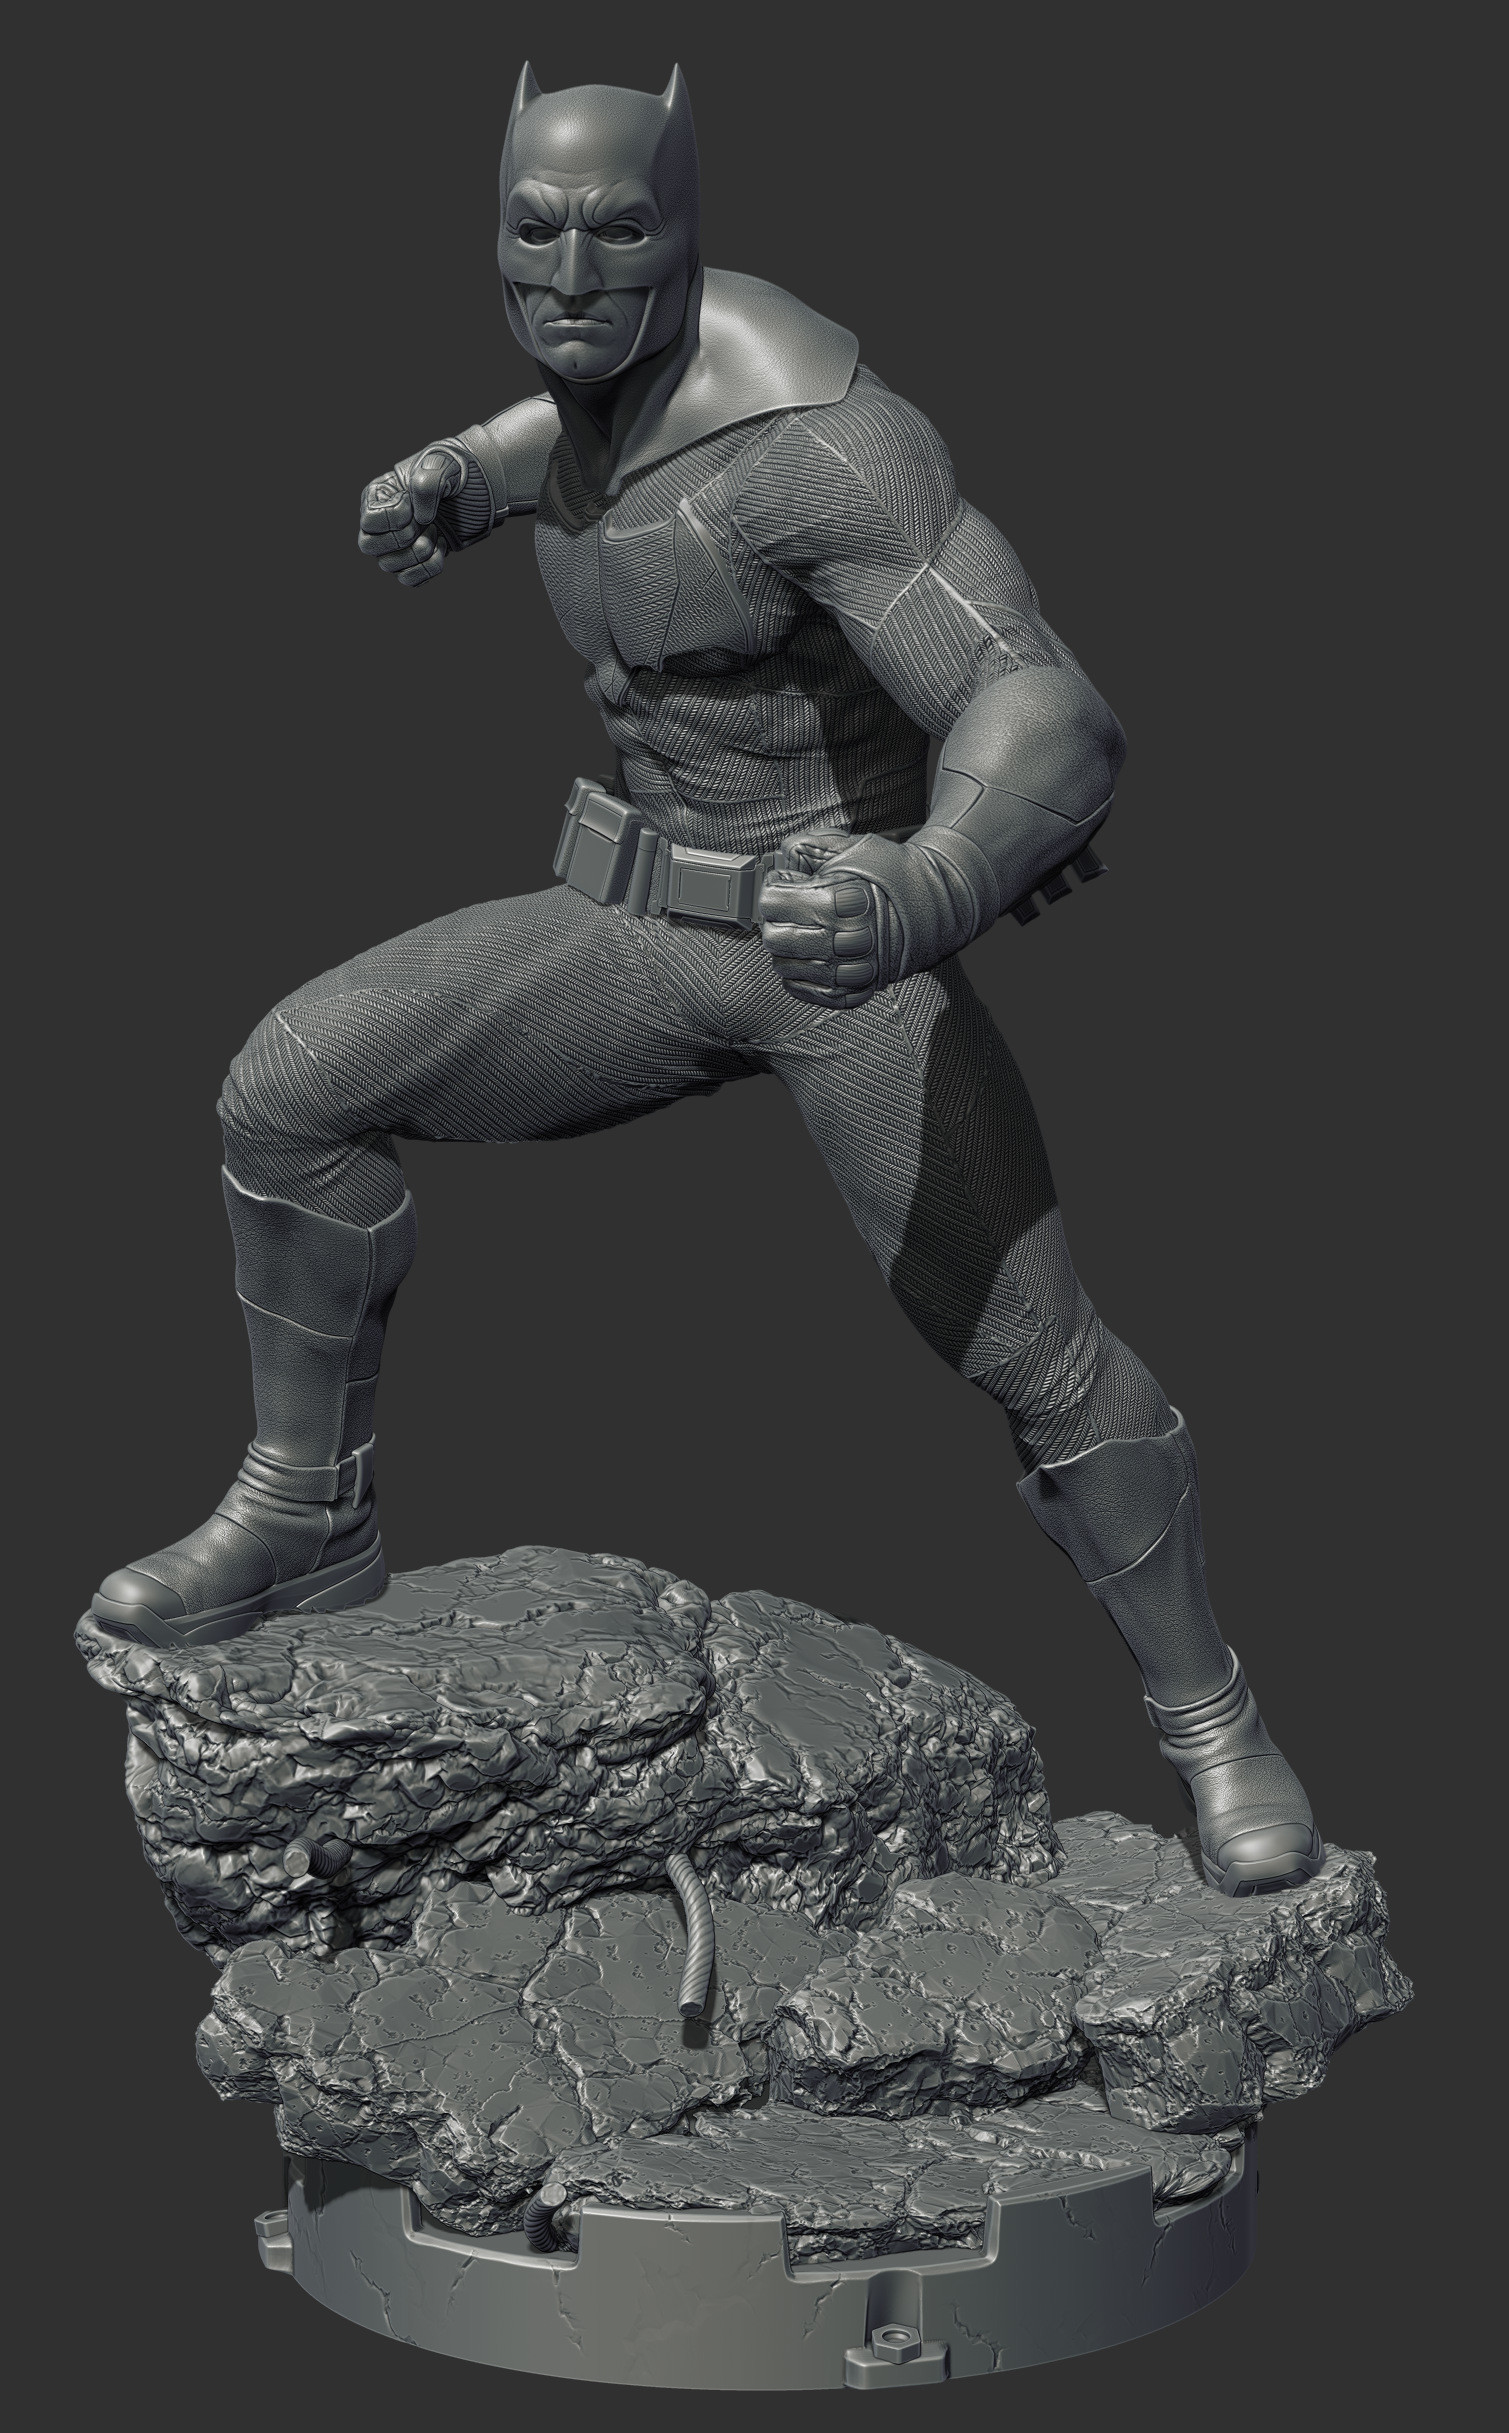 David giraud zbrush document9